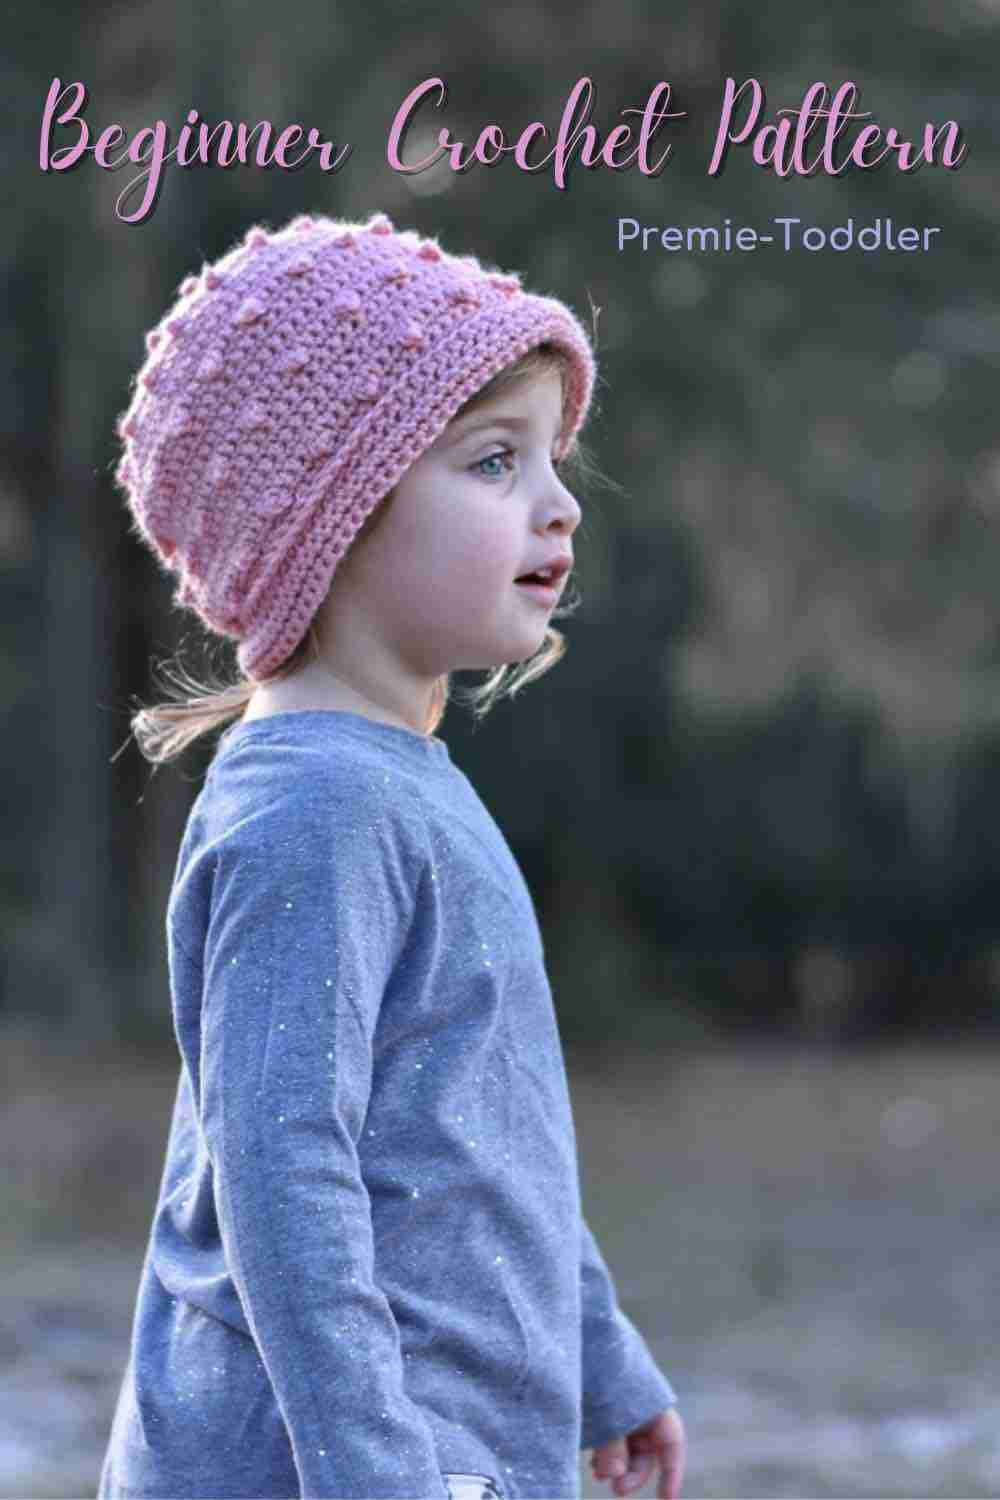 Girl's Bobbly Knobbly Hat Free Crochet Pattern For Your Adorable Cutie Pie Start Crochet